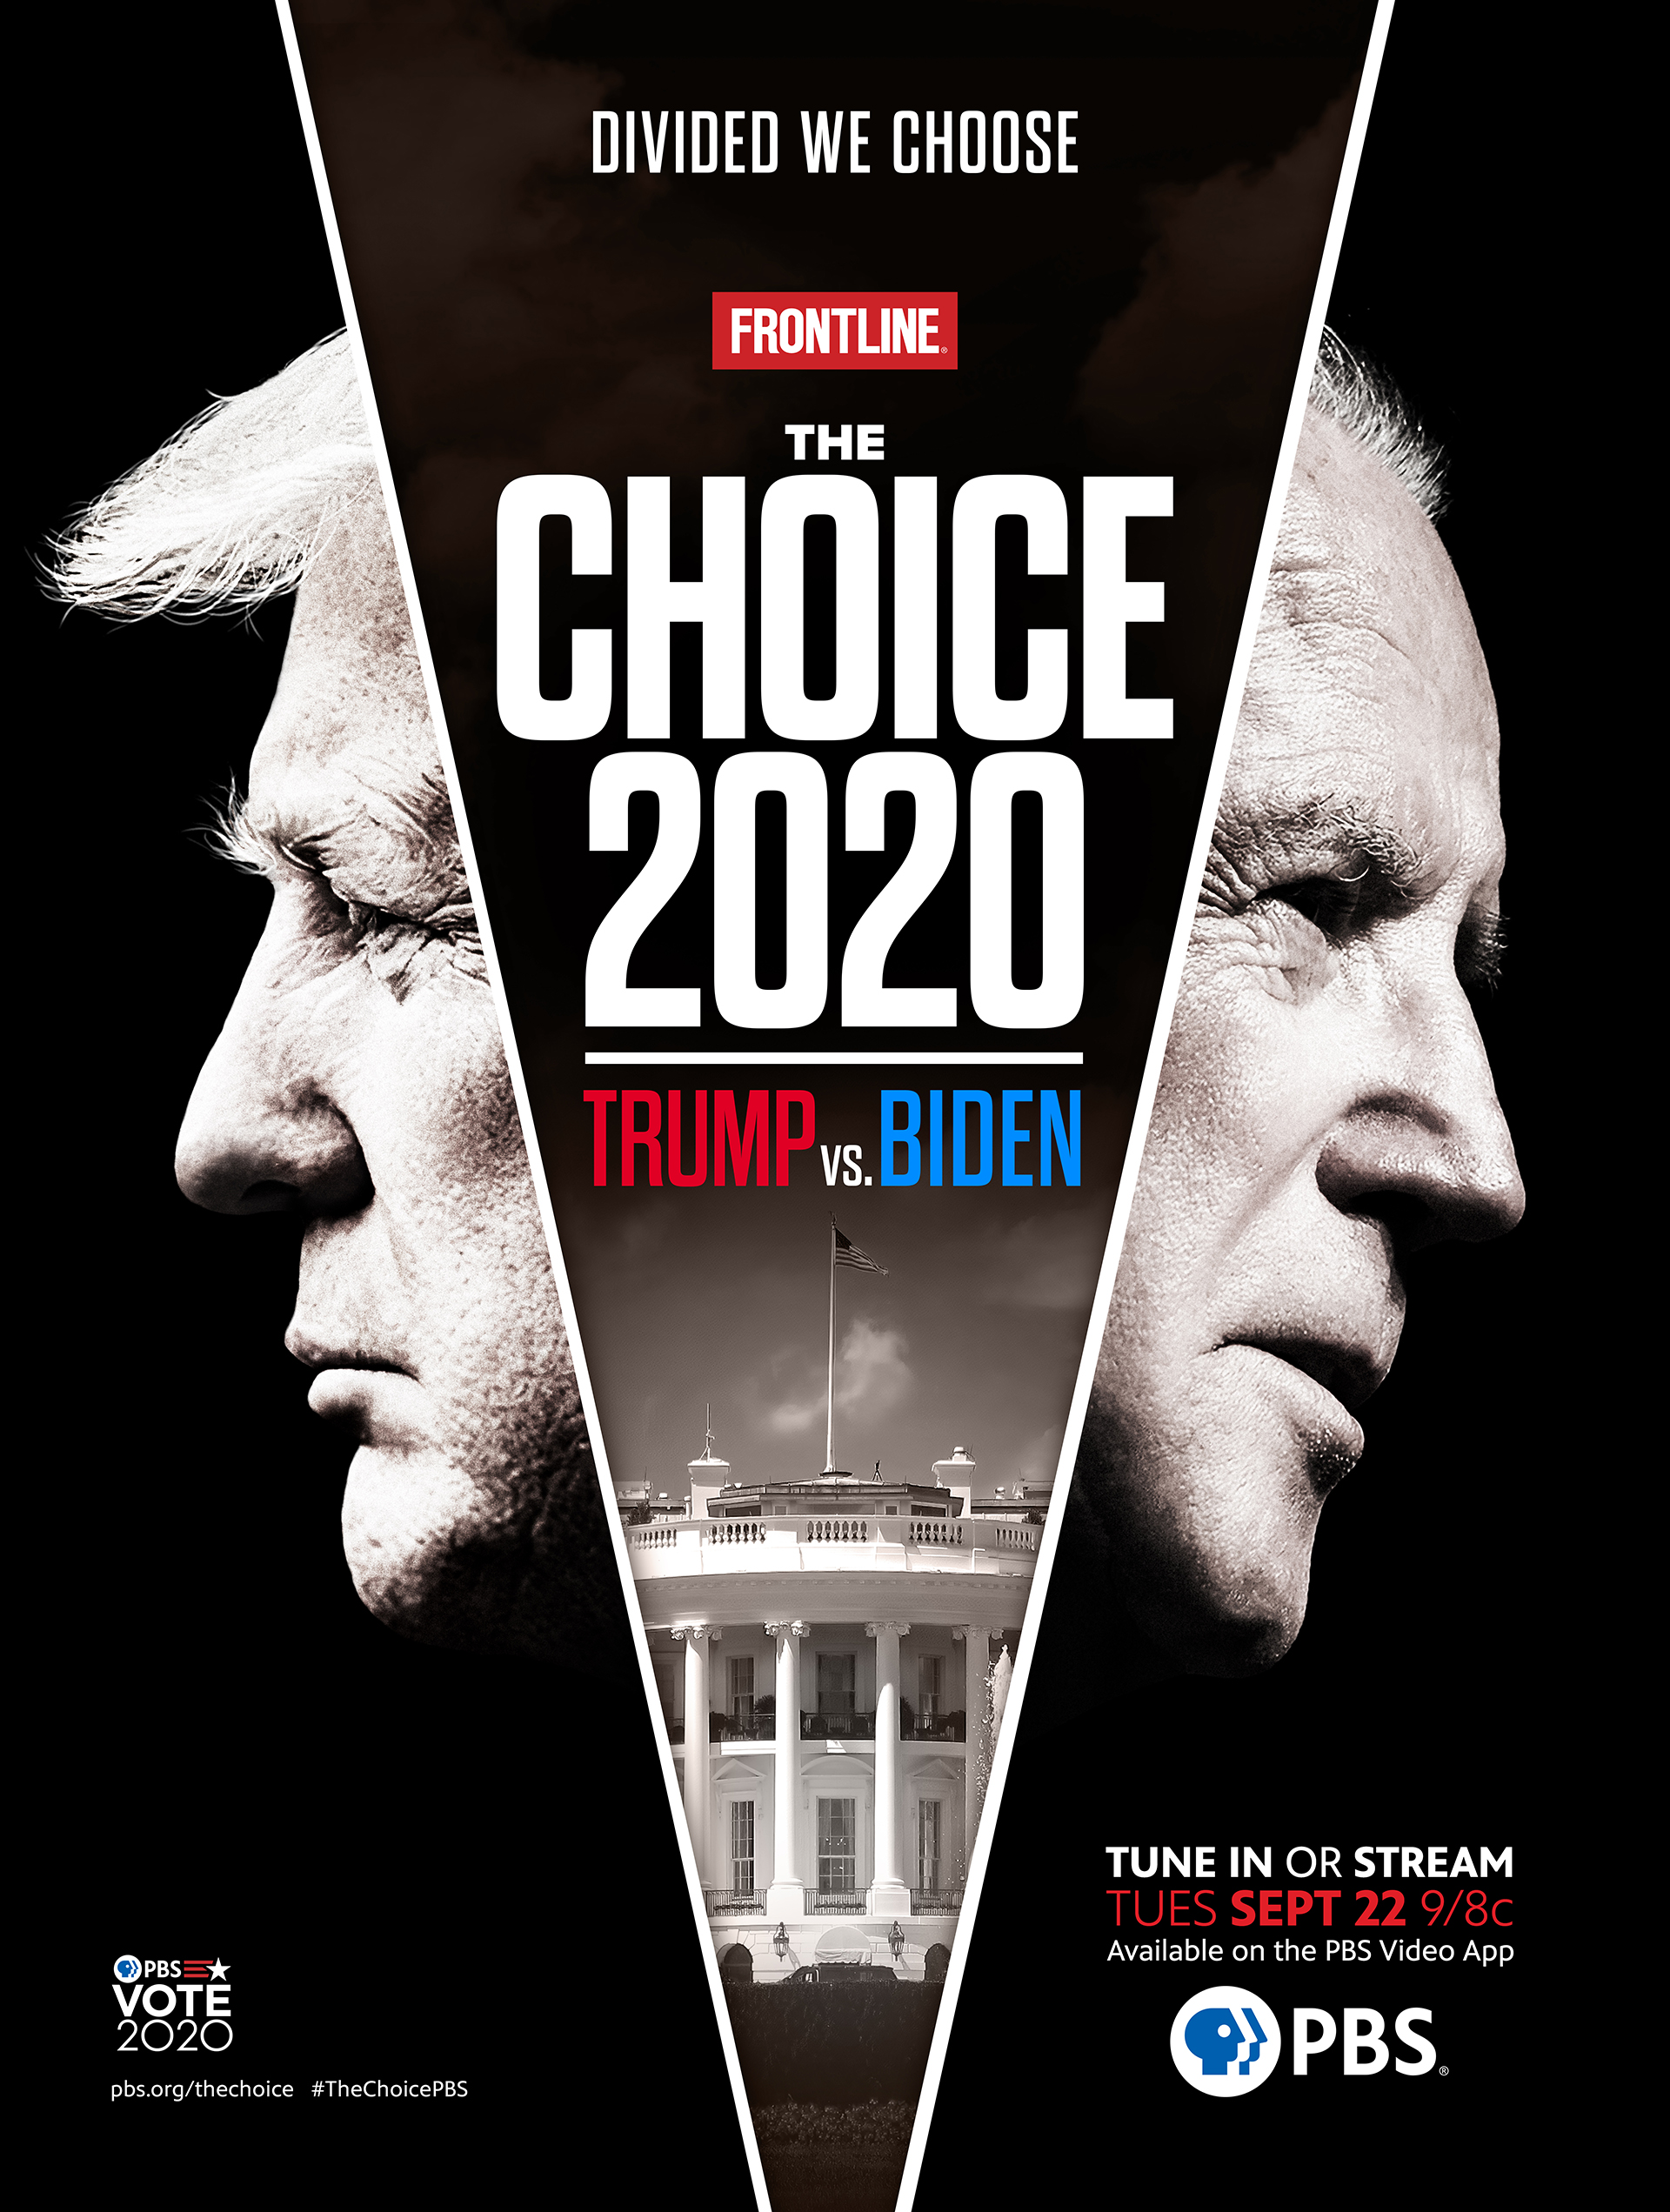 Promotional poster for THE CHOICE 2020: TRUMP VS BIDEN